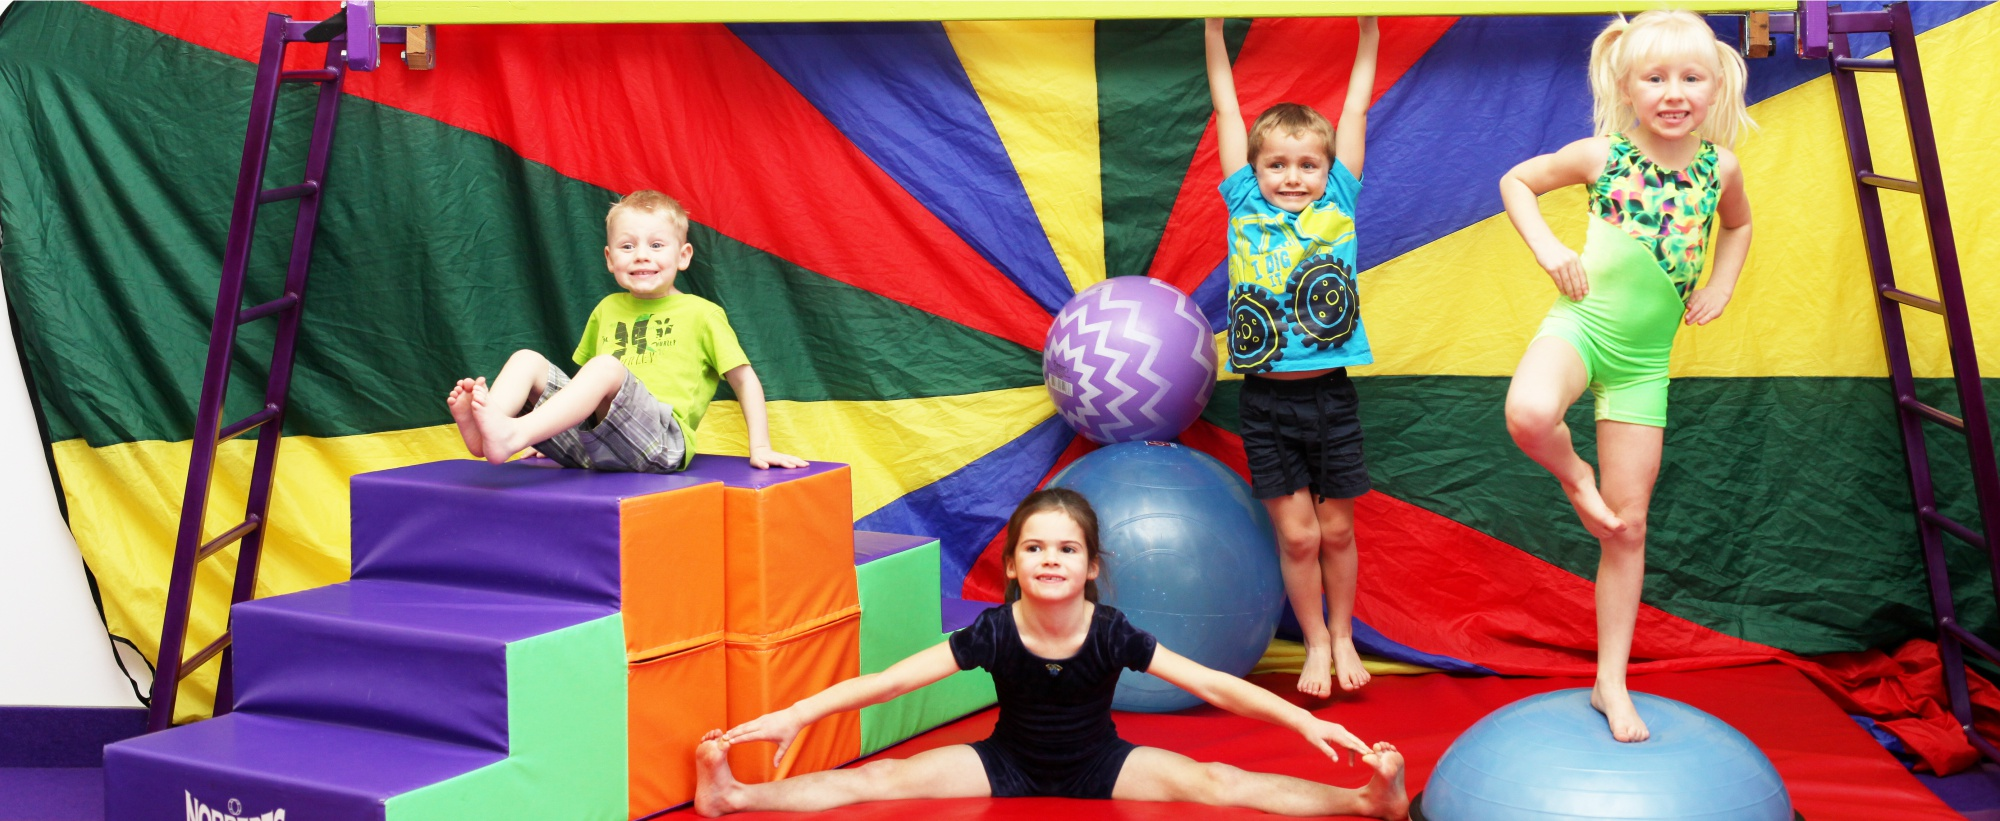 kelowna gymnastics preschool classes